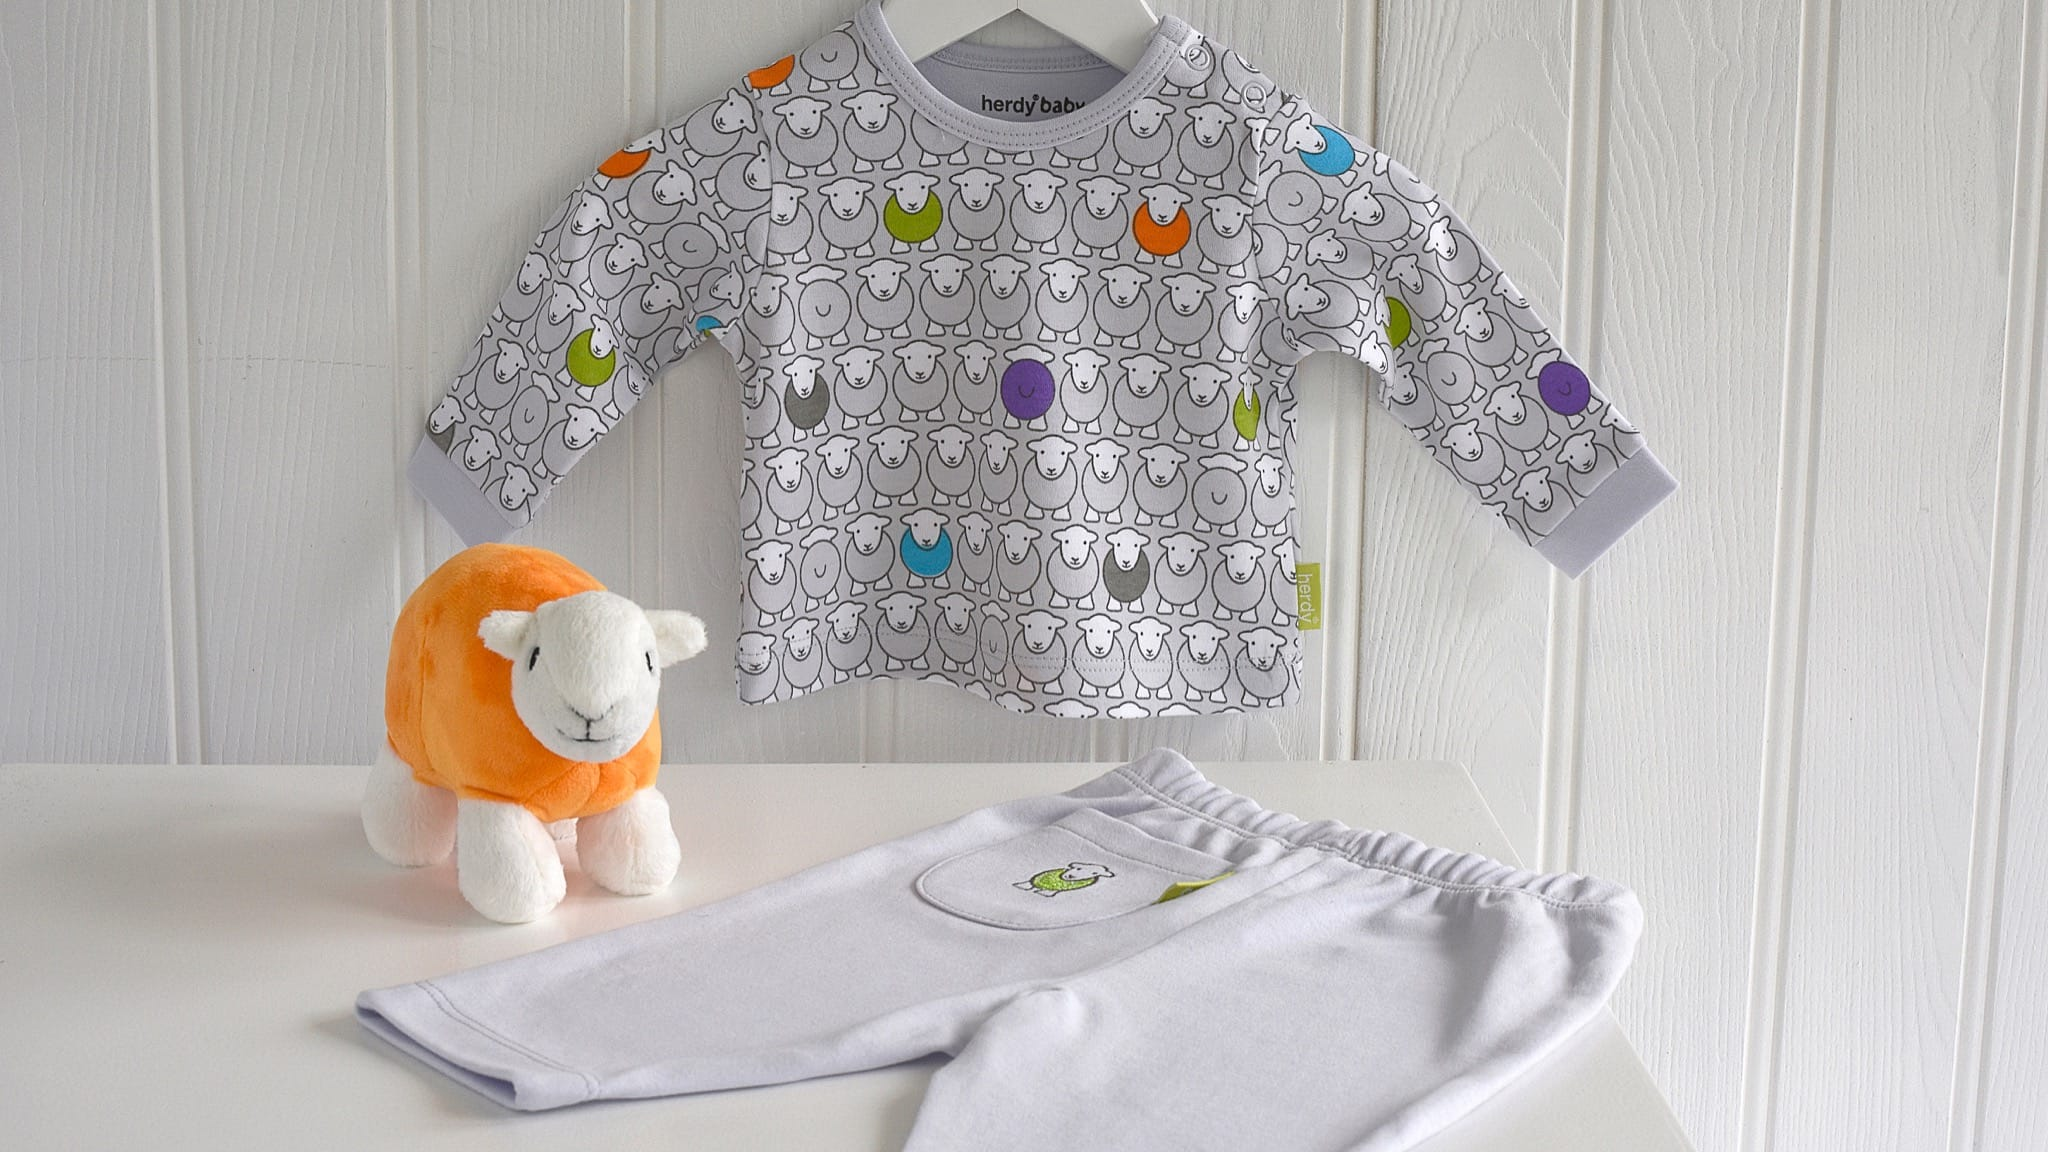 A Herdy Baby Top & Pants set, with an orange Baby Herdy in between